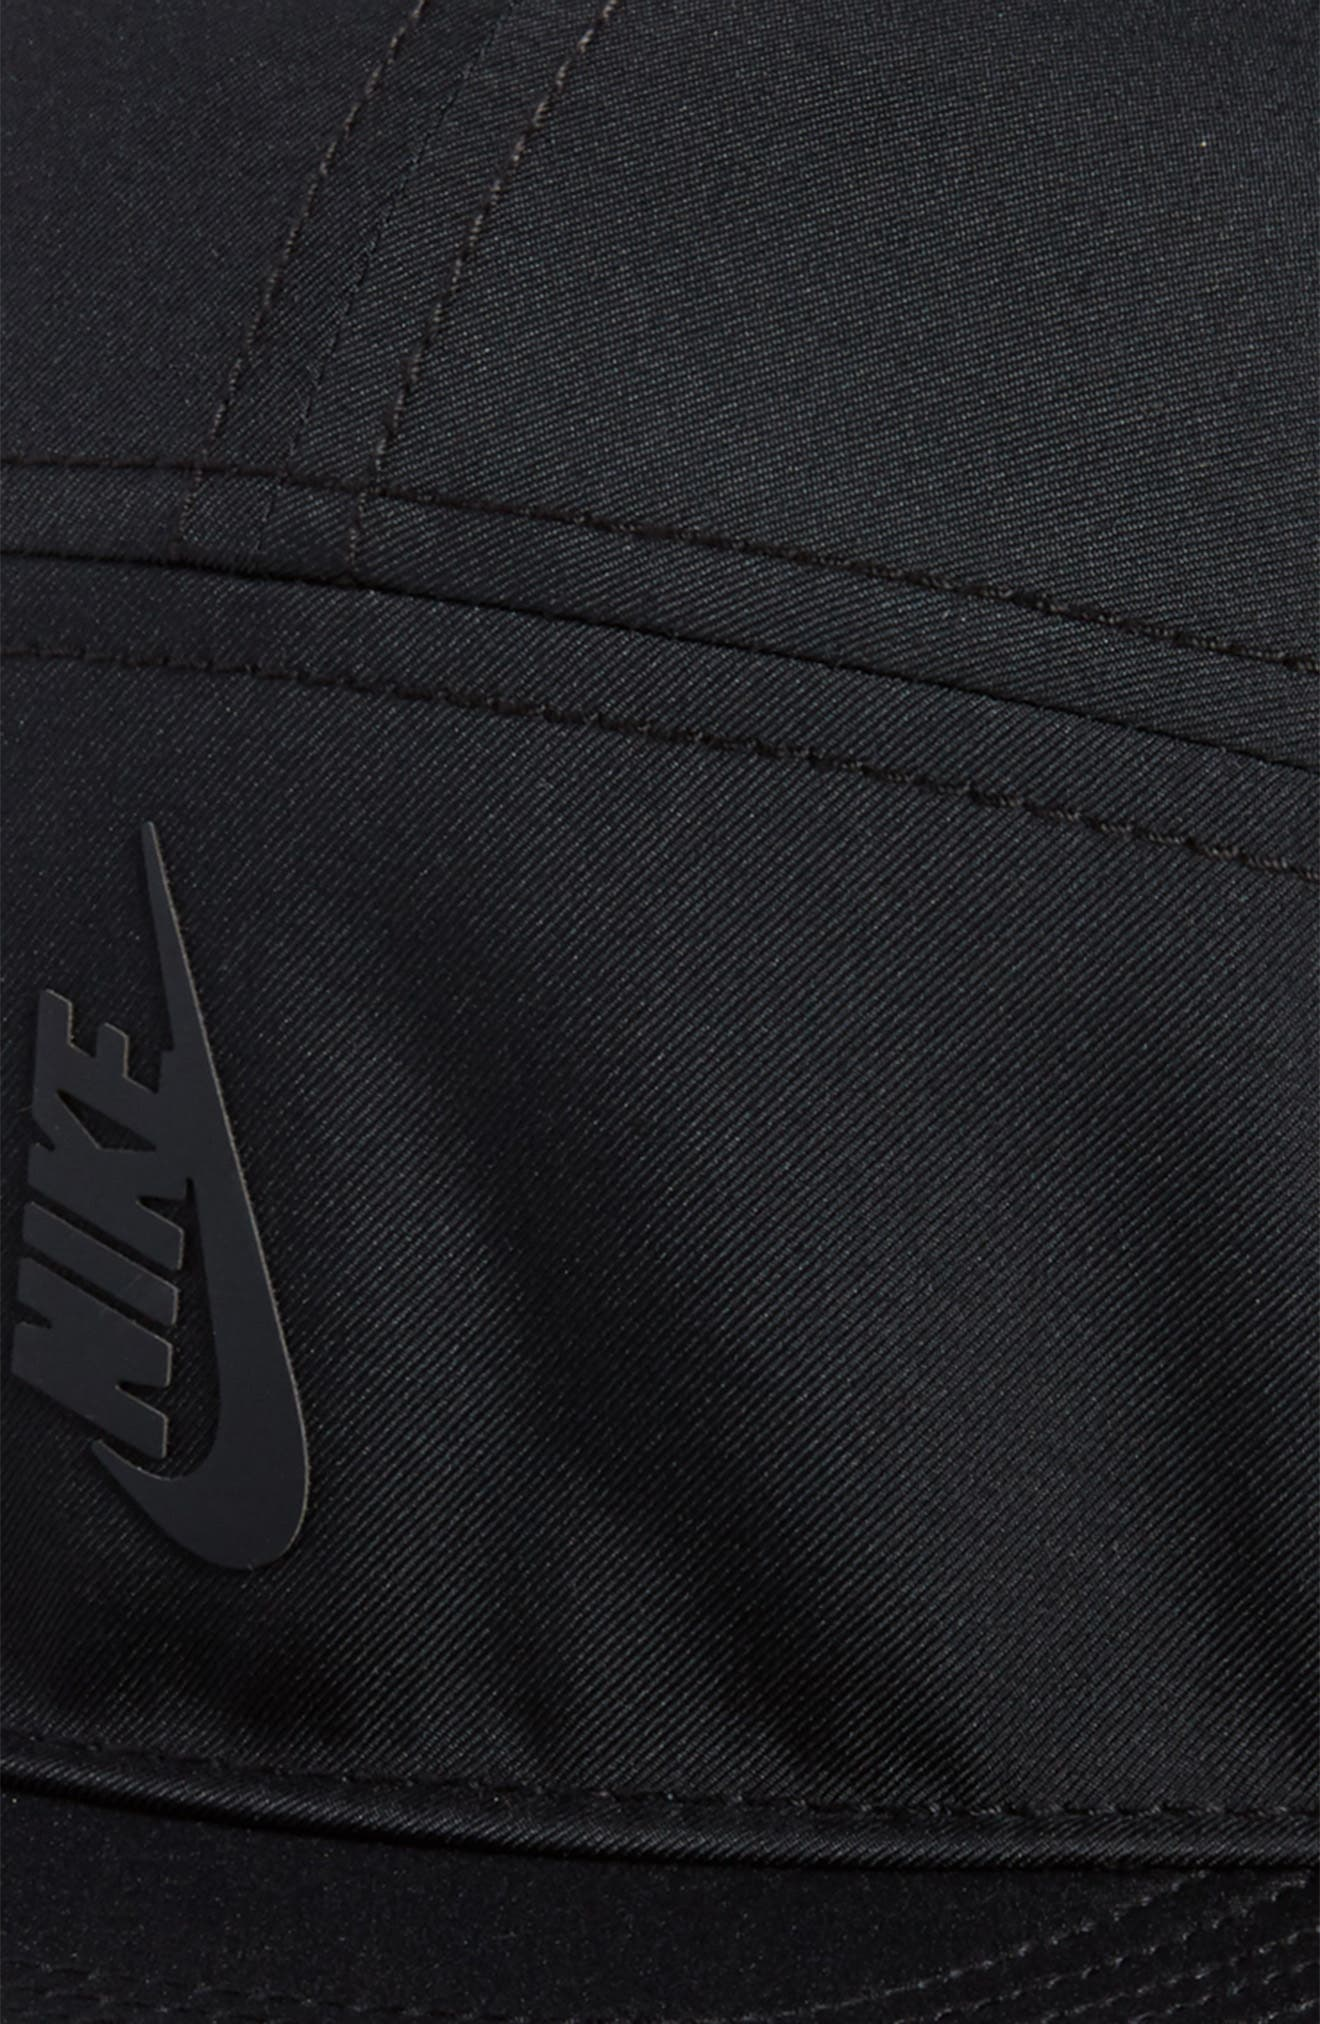 Sportswear NikeLab Baseball Cap,                             Alternate thumbnail 3, color,                             011